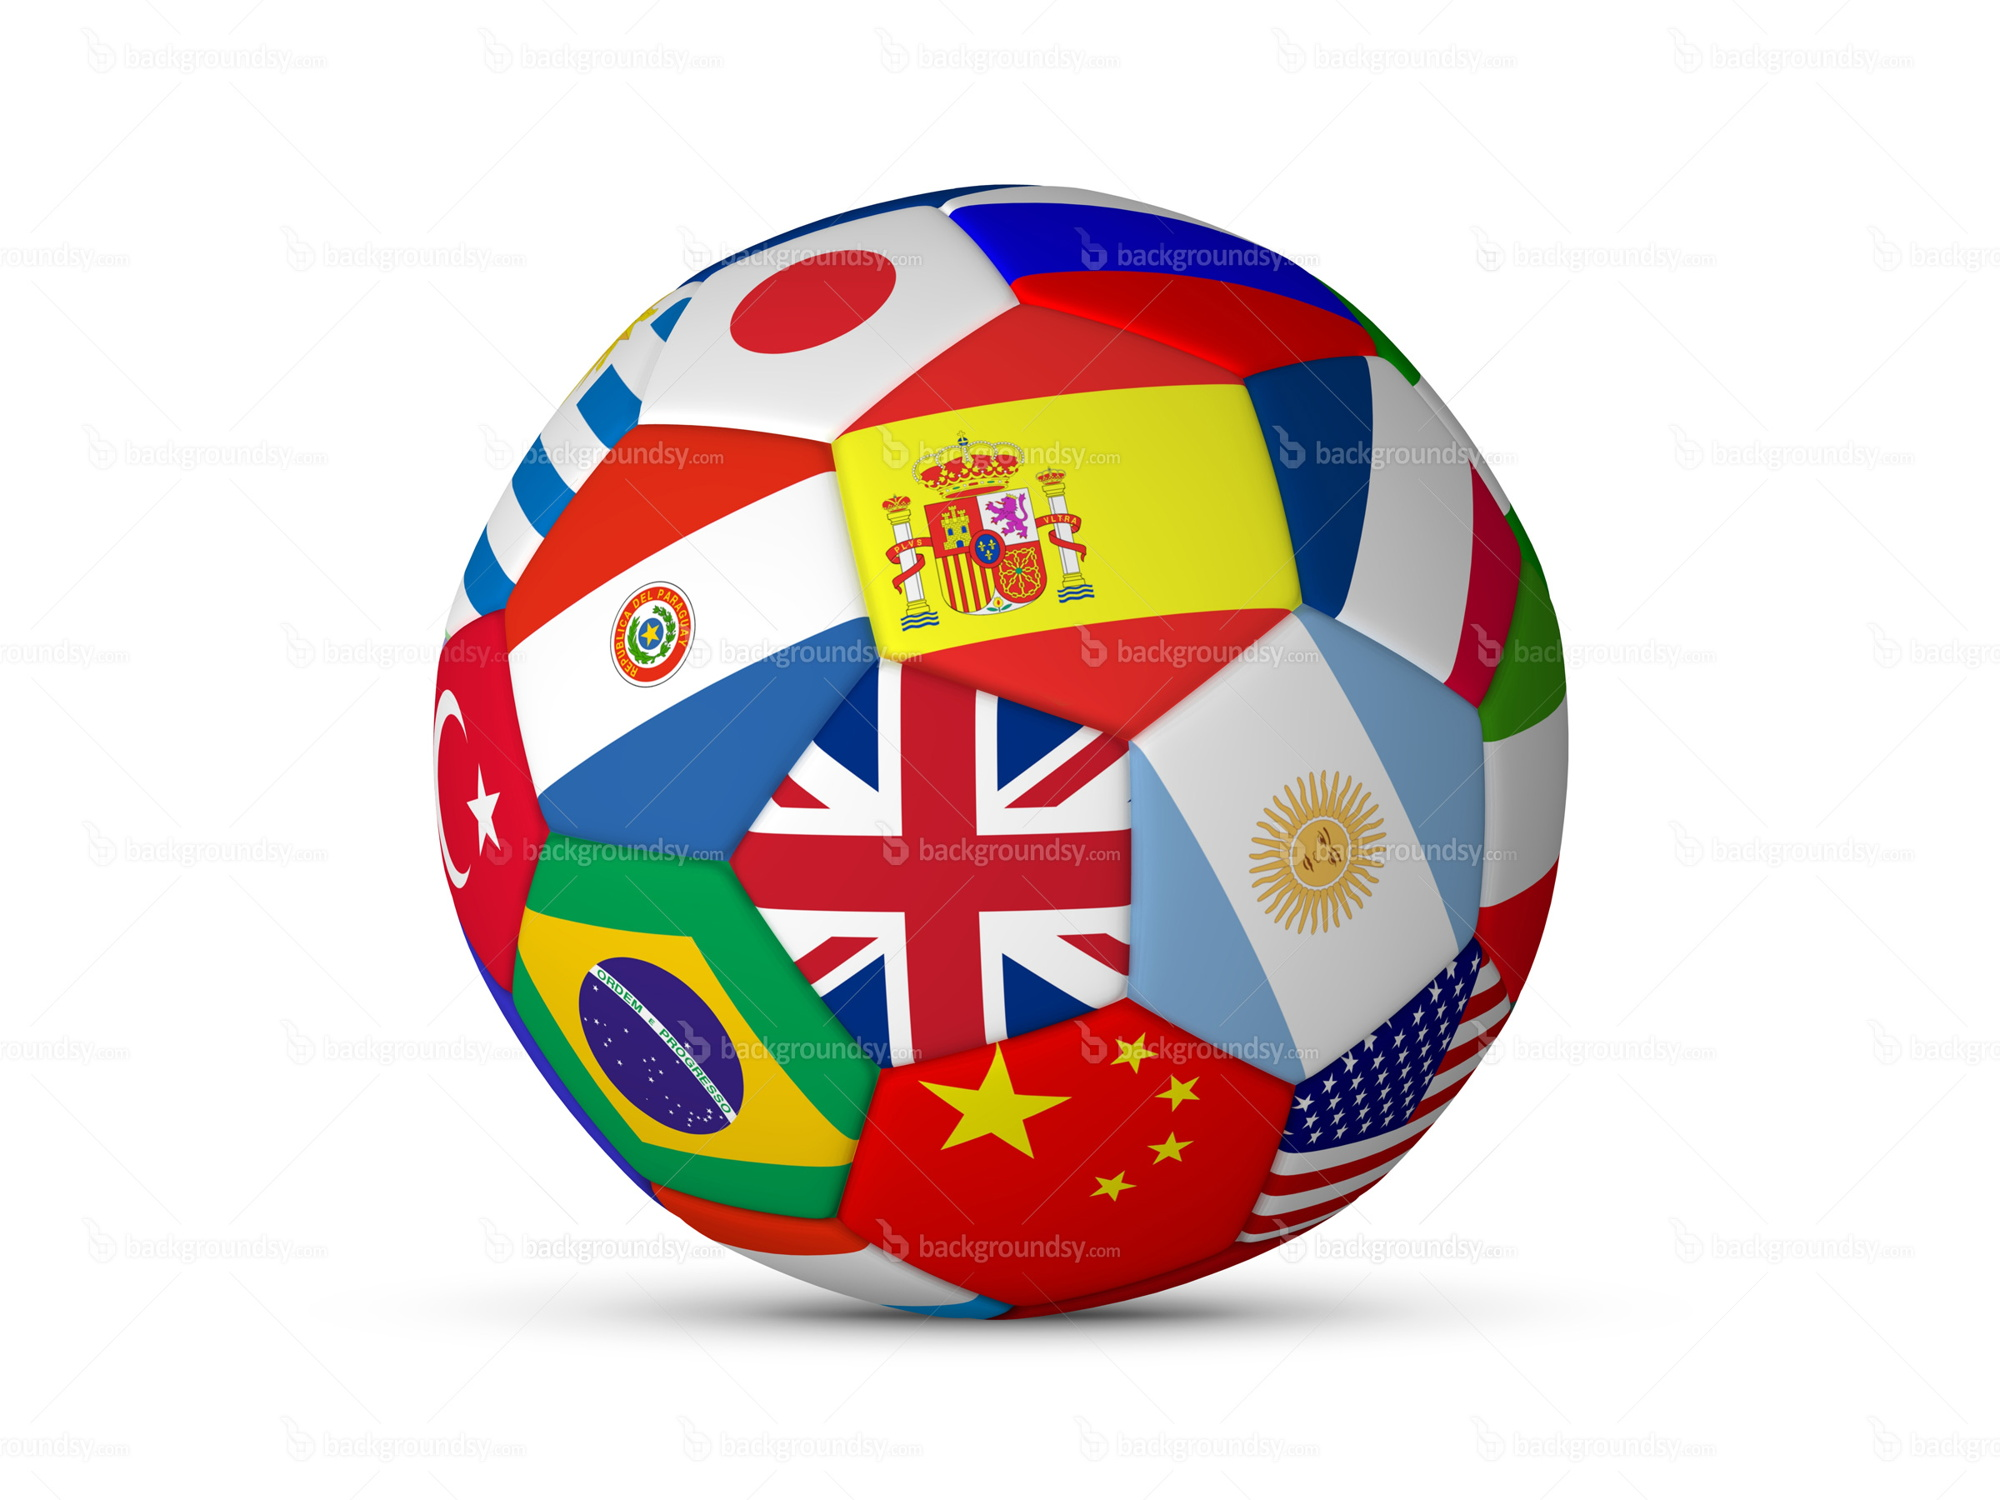 Football ball with flags | Backgroundsy.com